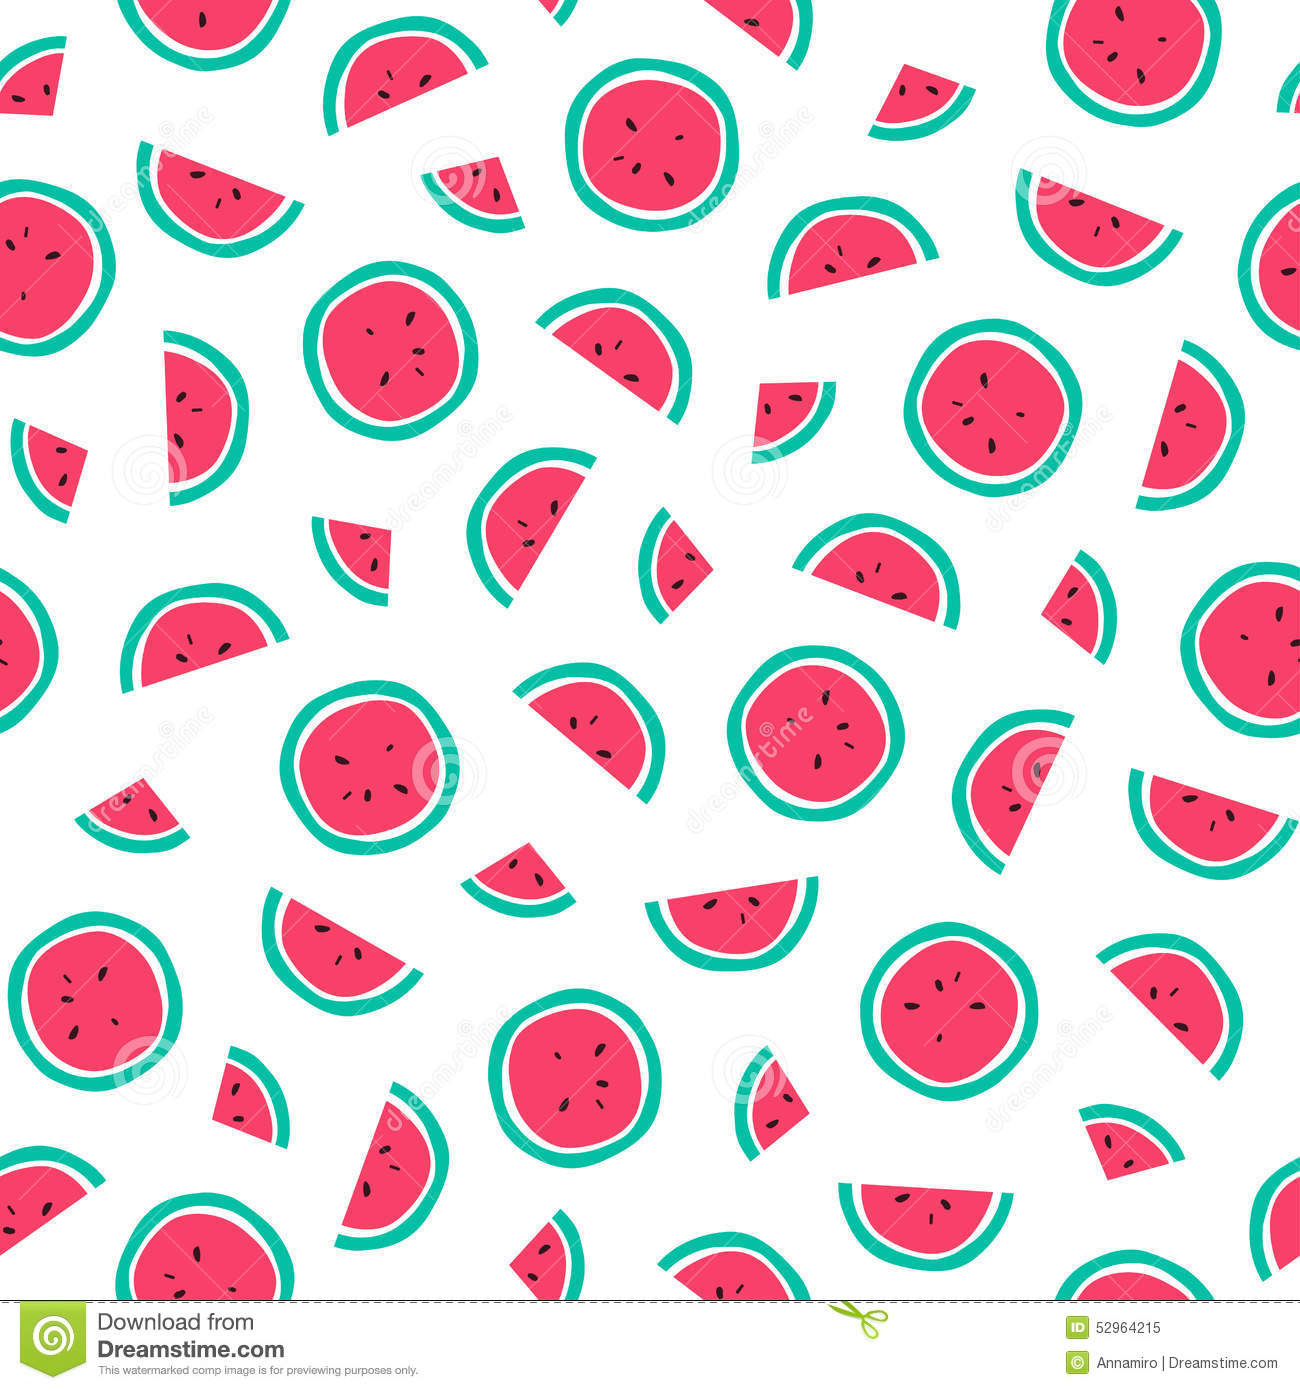 tumblr backgrounds watermelon background - photo #47